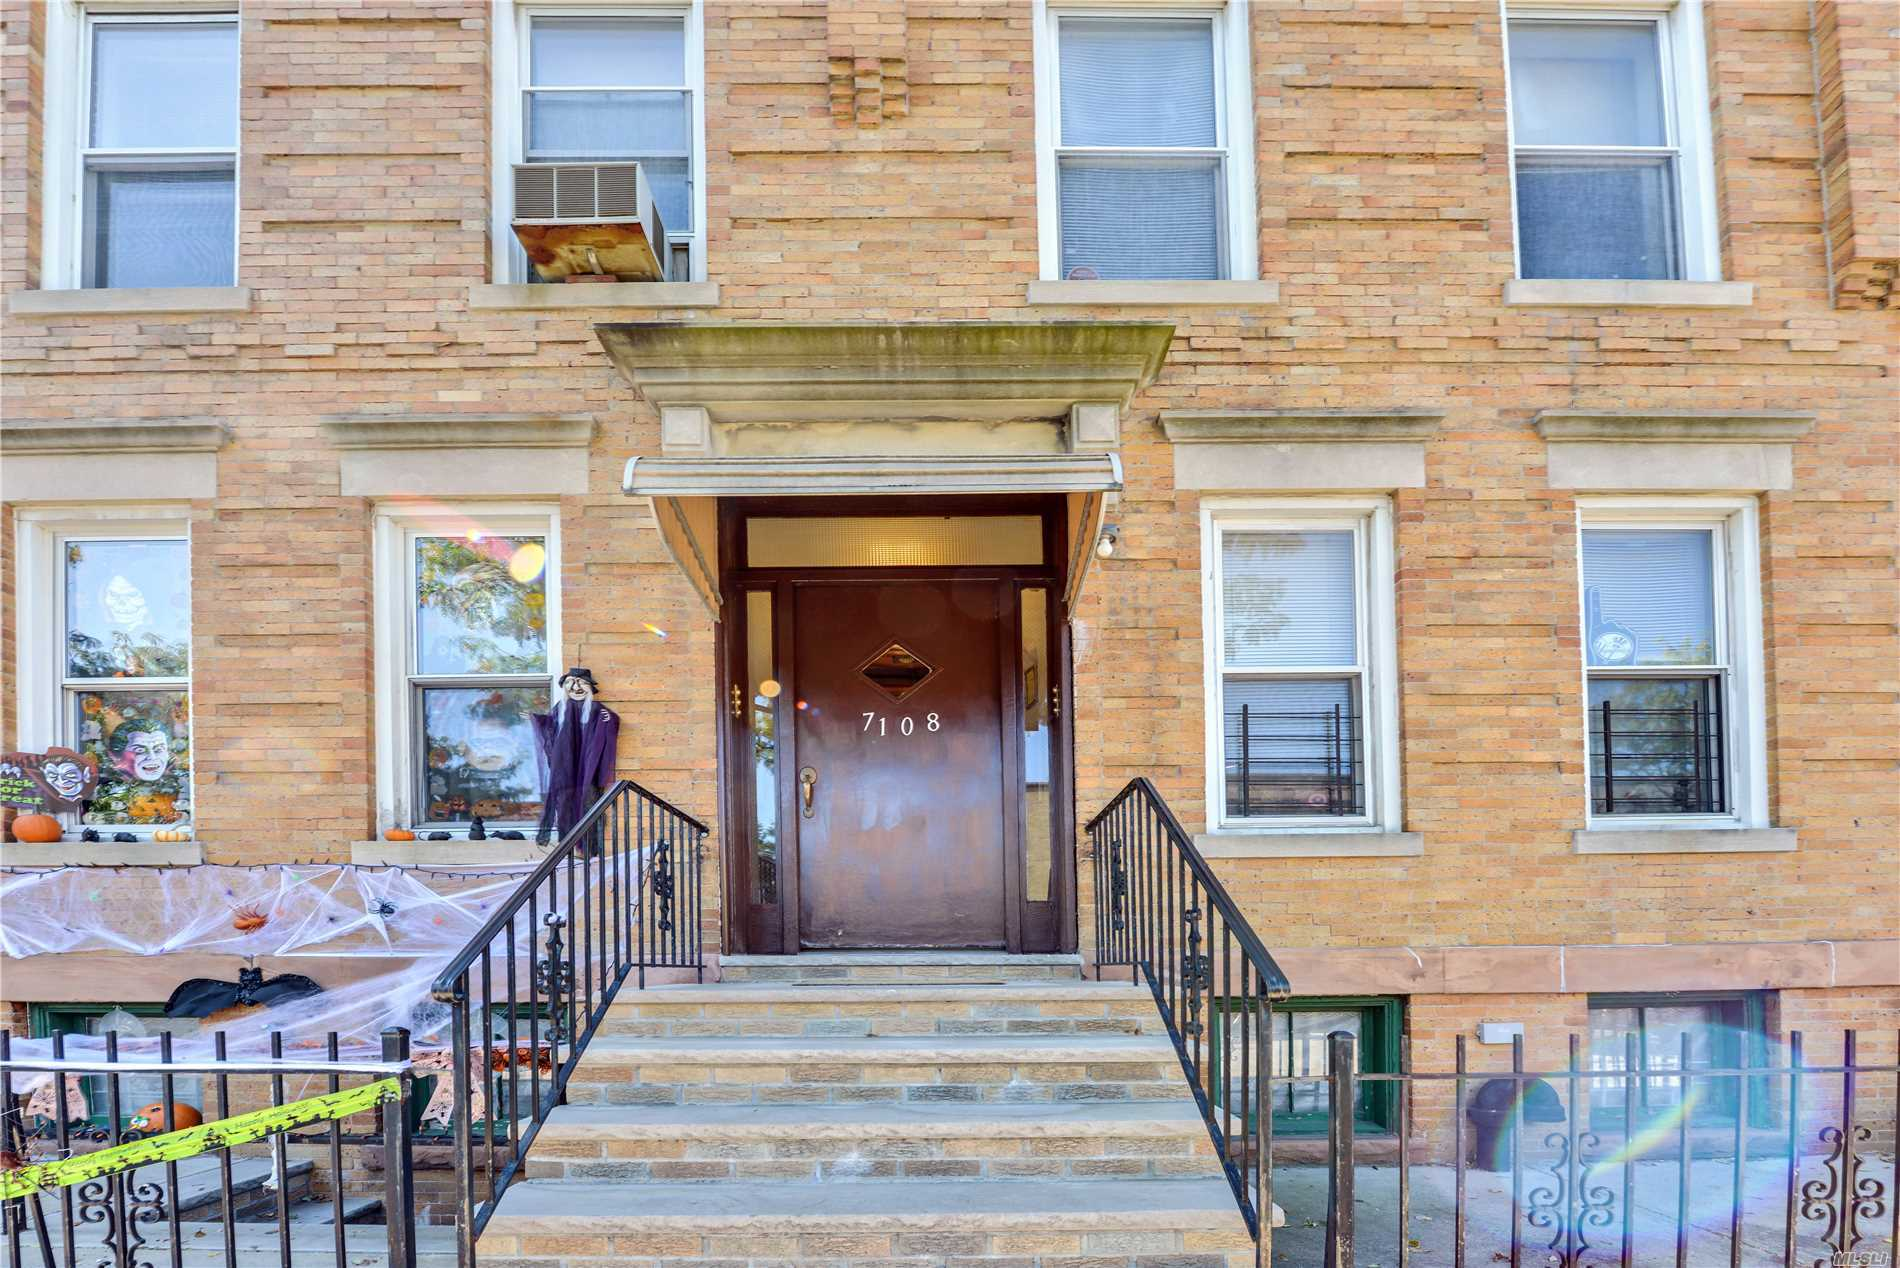 Great Investment Opportunity ... Large Six Family On Glendale/Ridgewood Border ... Minutes To The M Train ... $80, 000 Rent Roll ... Call For More Details ...